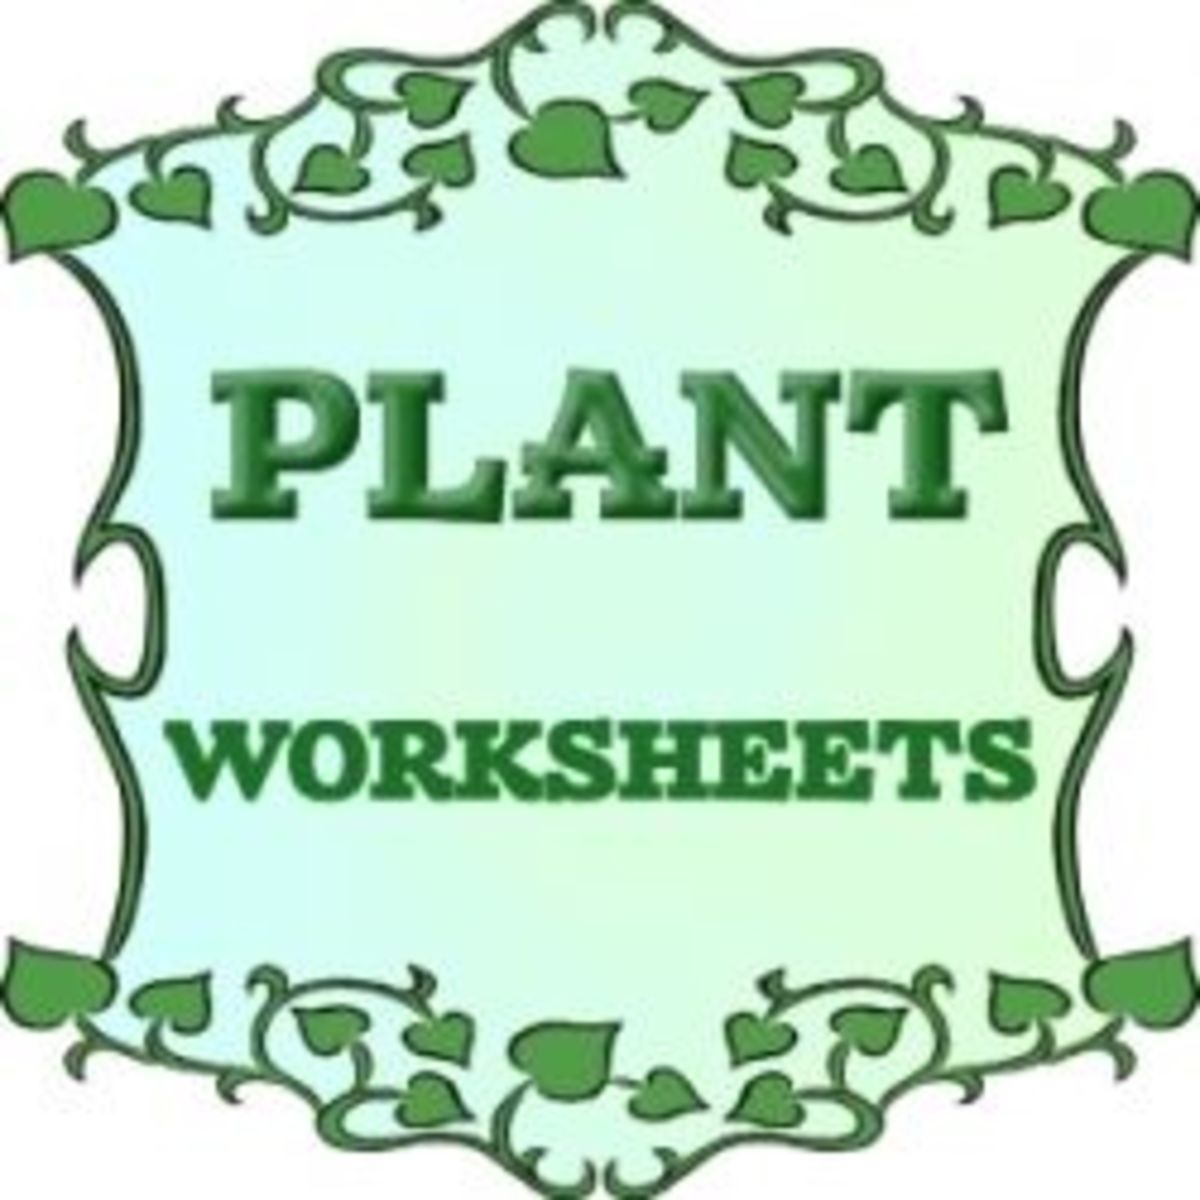 Plant Worksheets By Jeanette